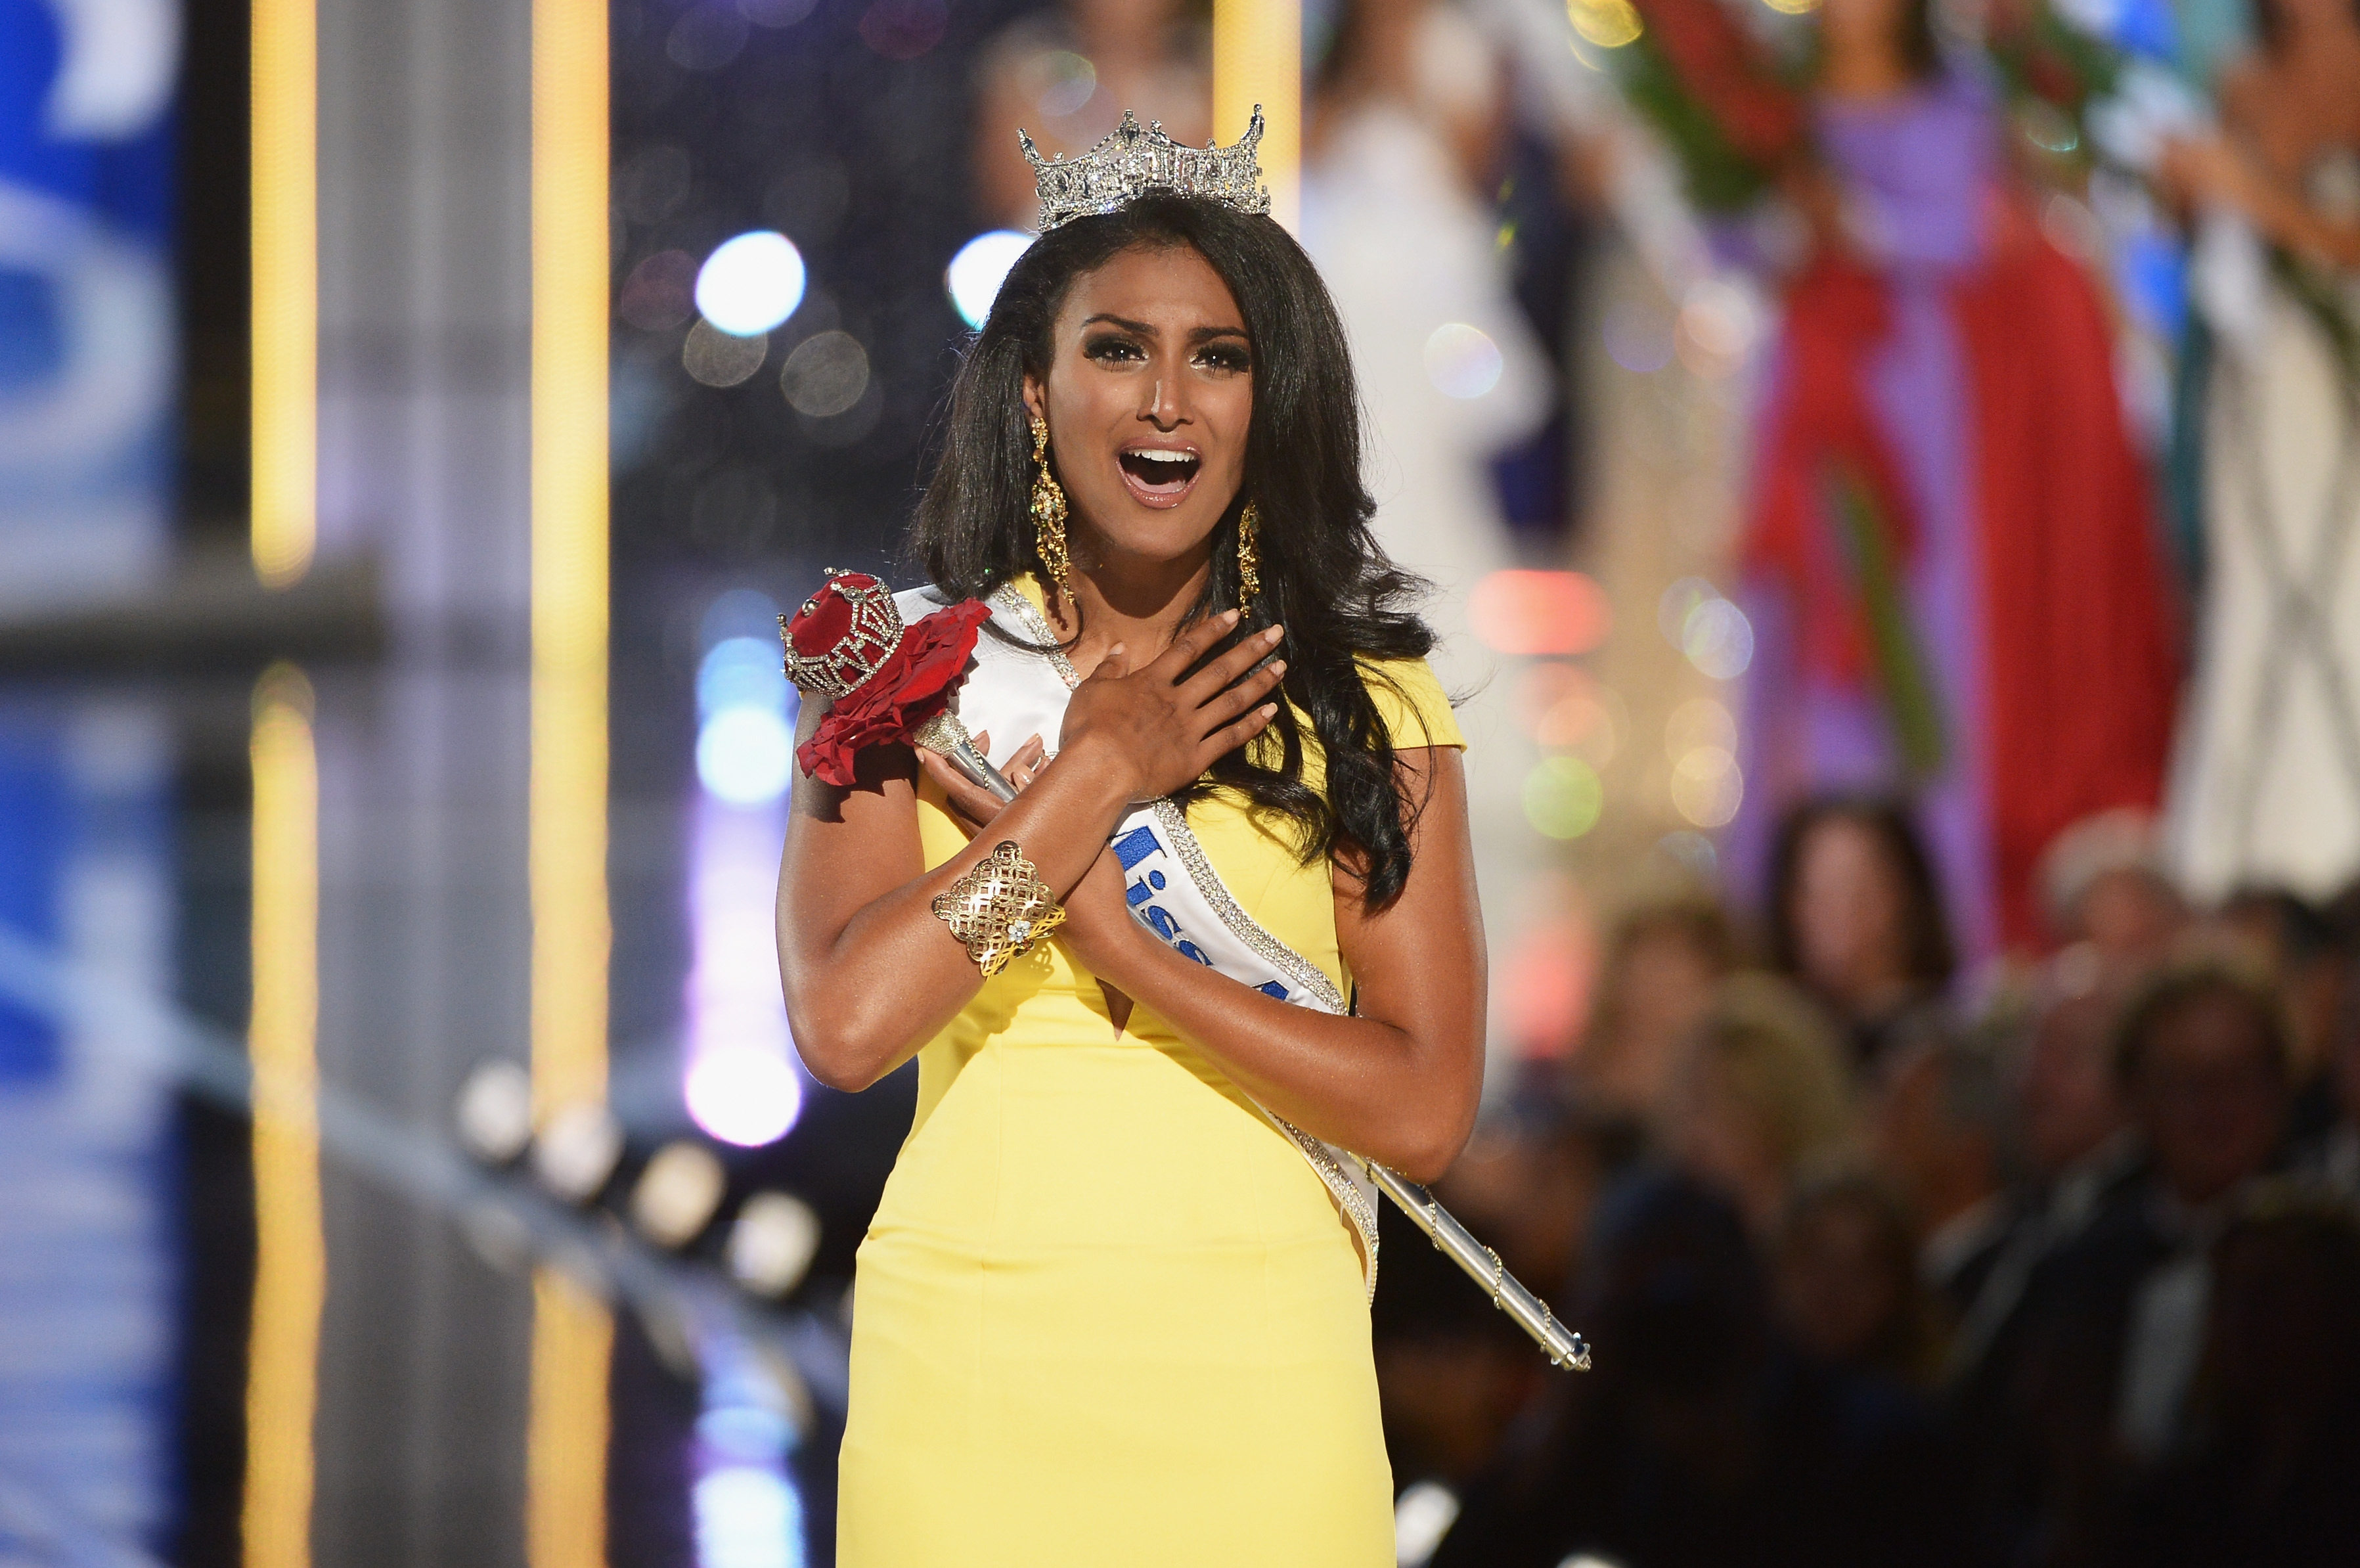 Miss New York Nina Davuluri wins the 2014 Miss America Competition at Boardwalk Hall Arena on September 15, 2013, in Atlantic City, N.J.